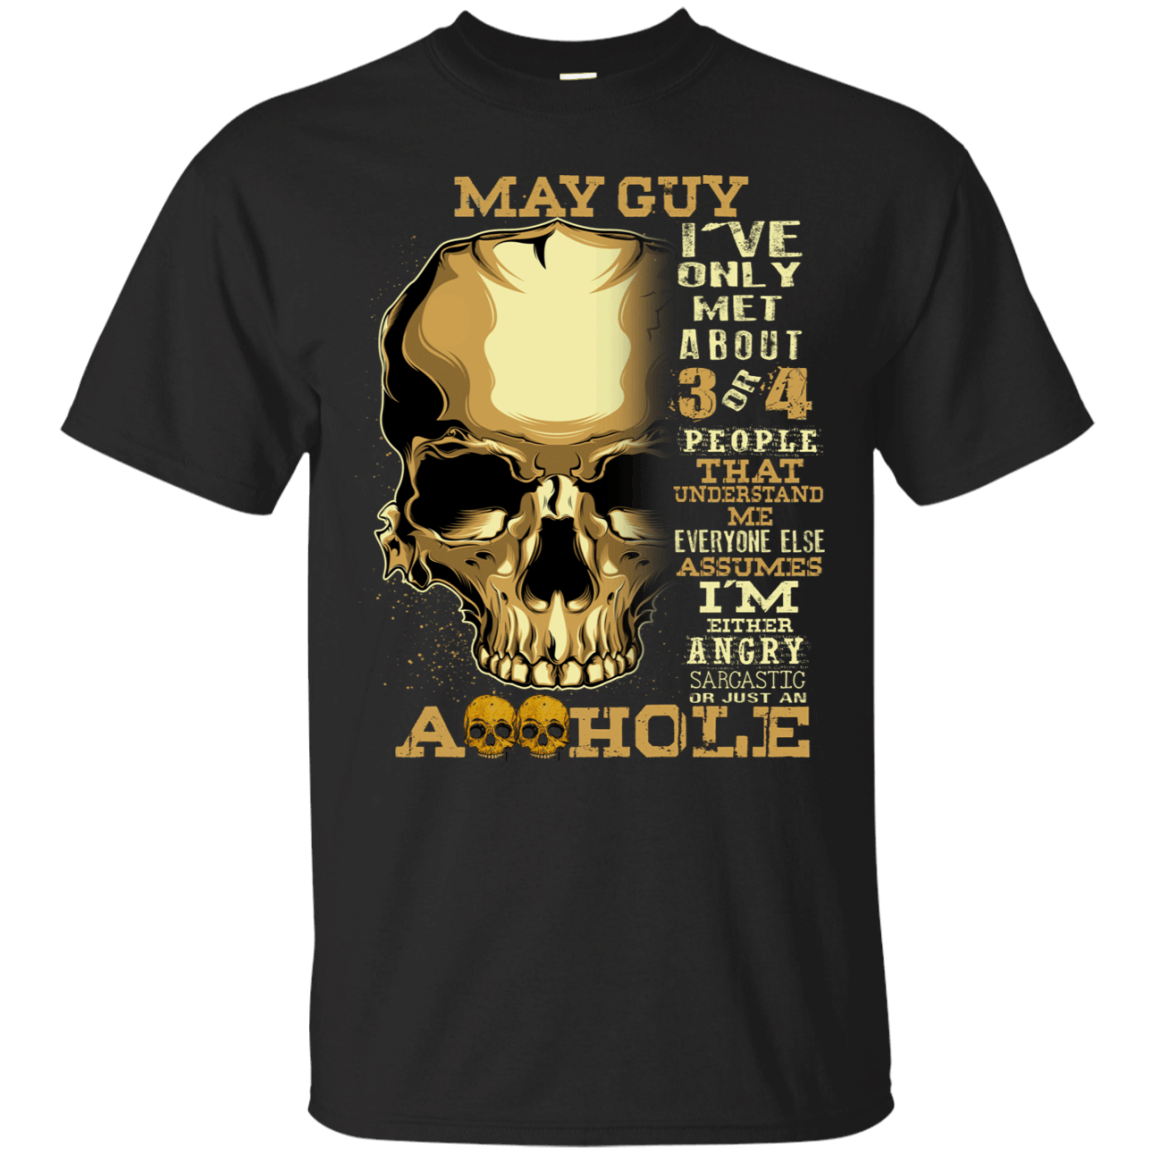 May Guy Skull - I'm Either Angry Sarcastic T-Shirt